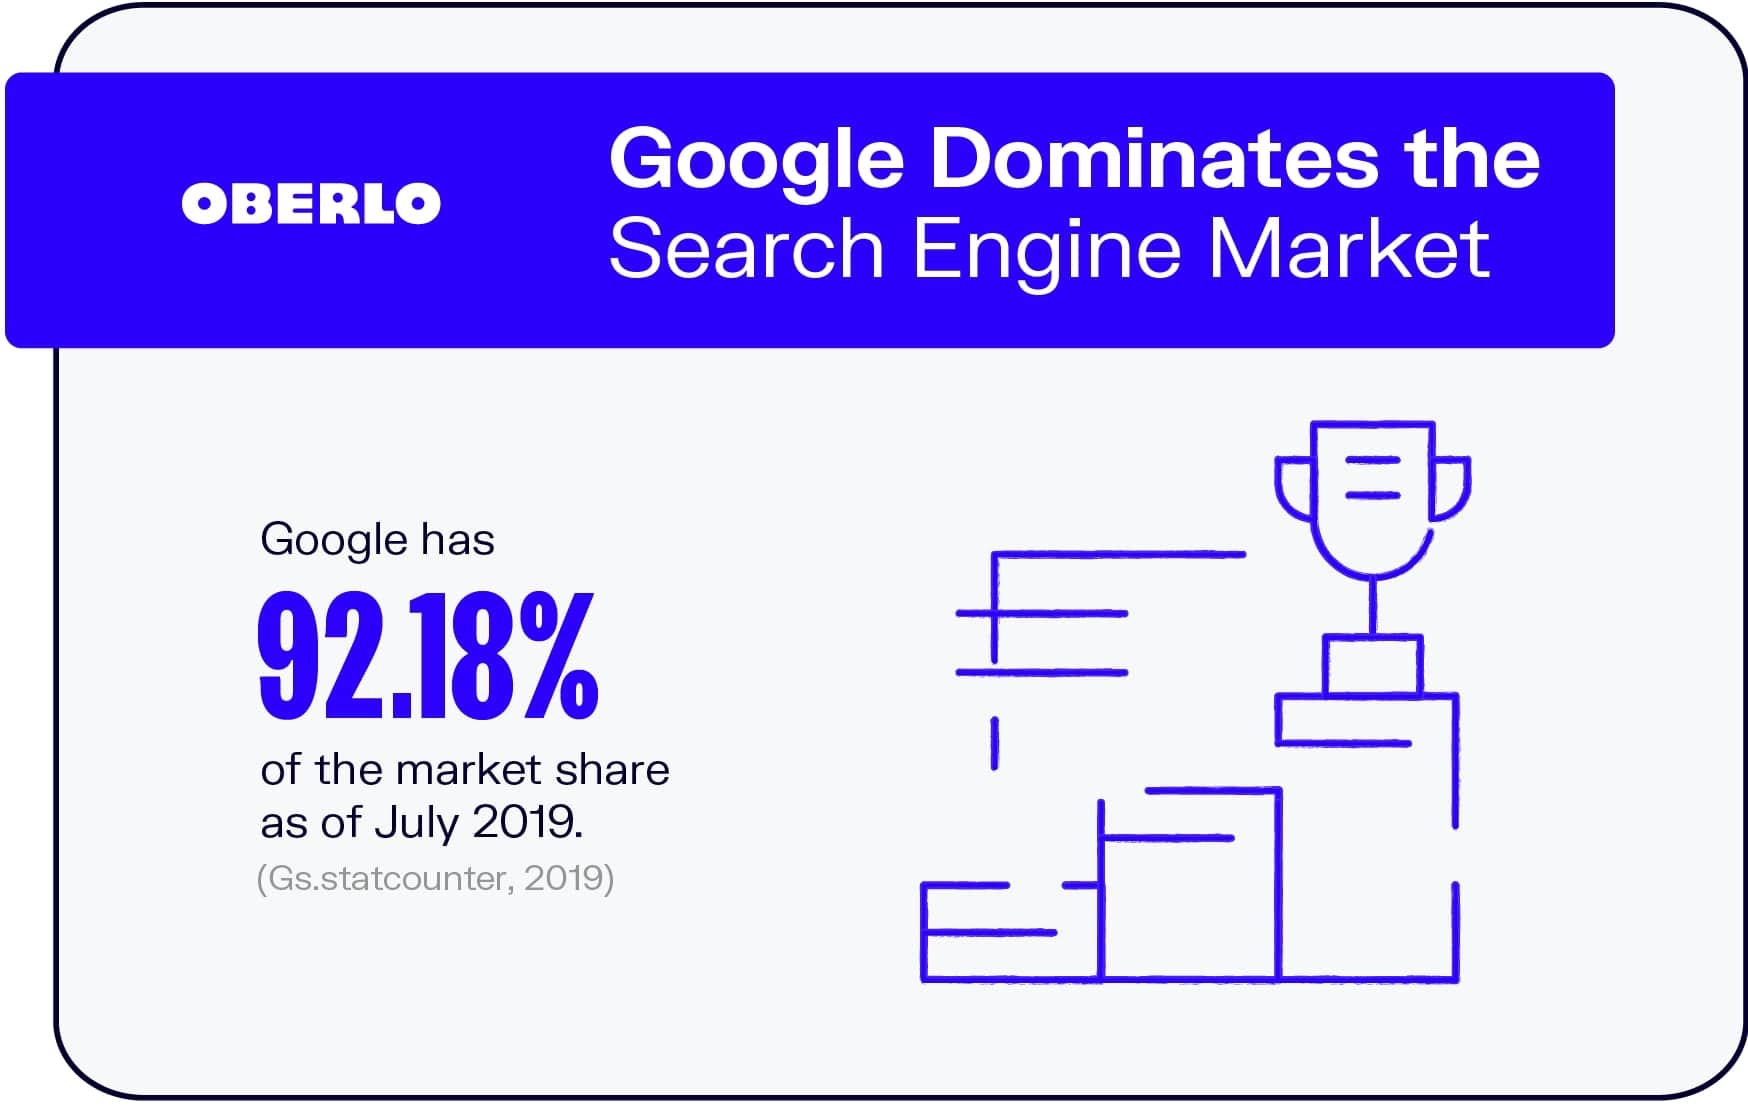 Google Dominates the Search Engine Market